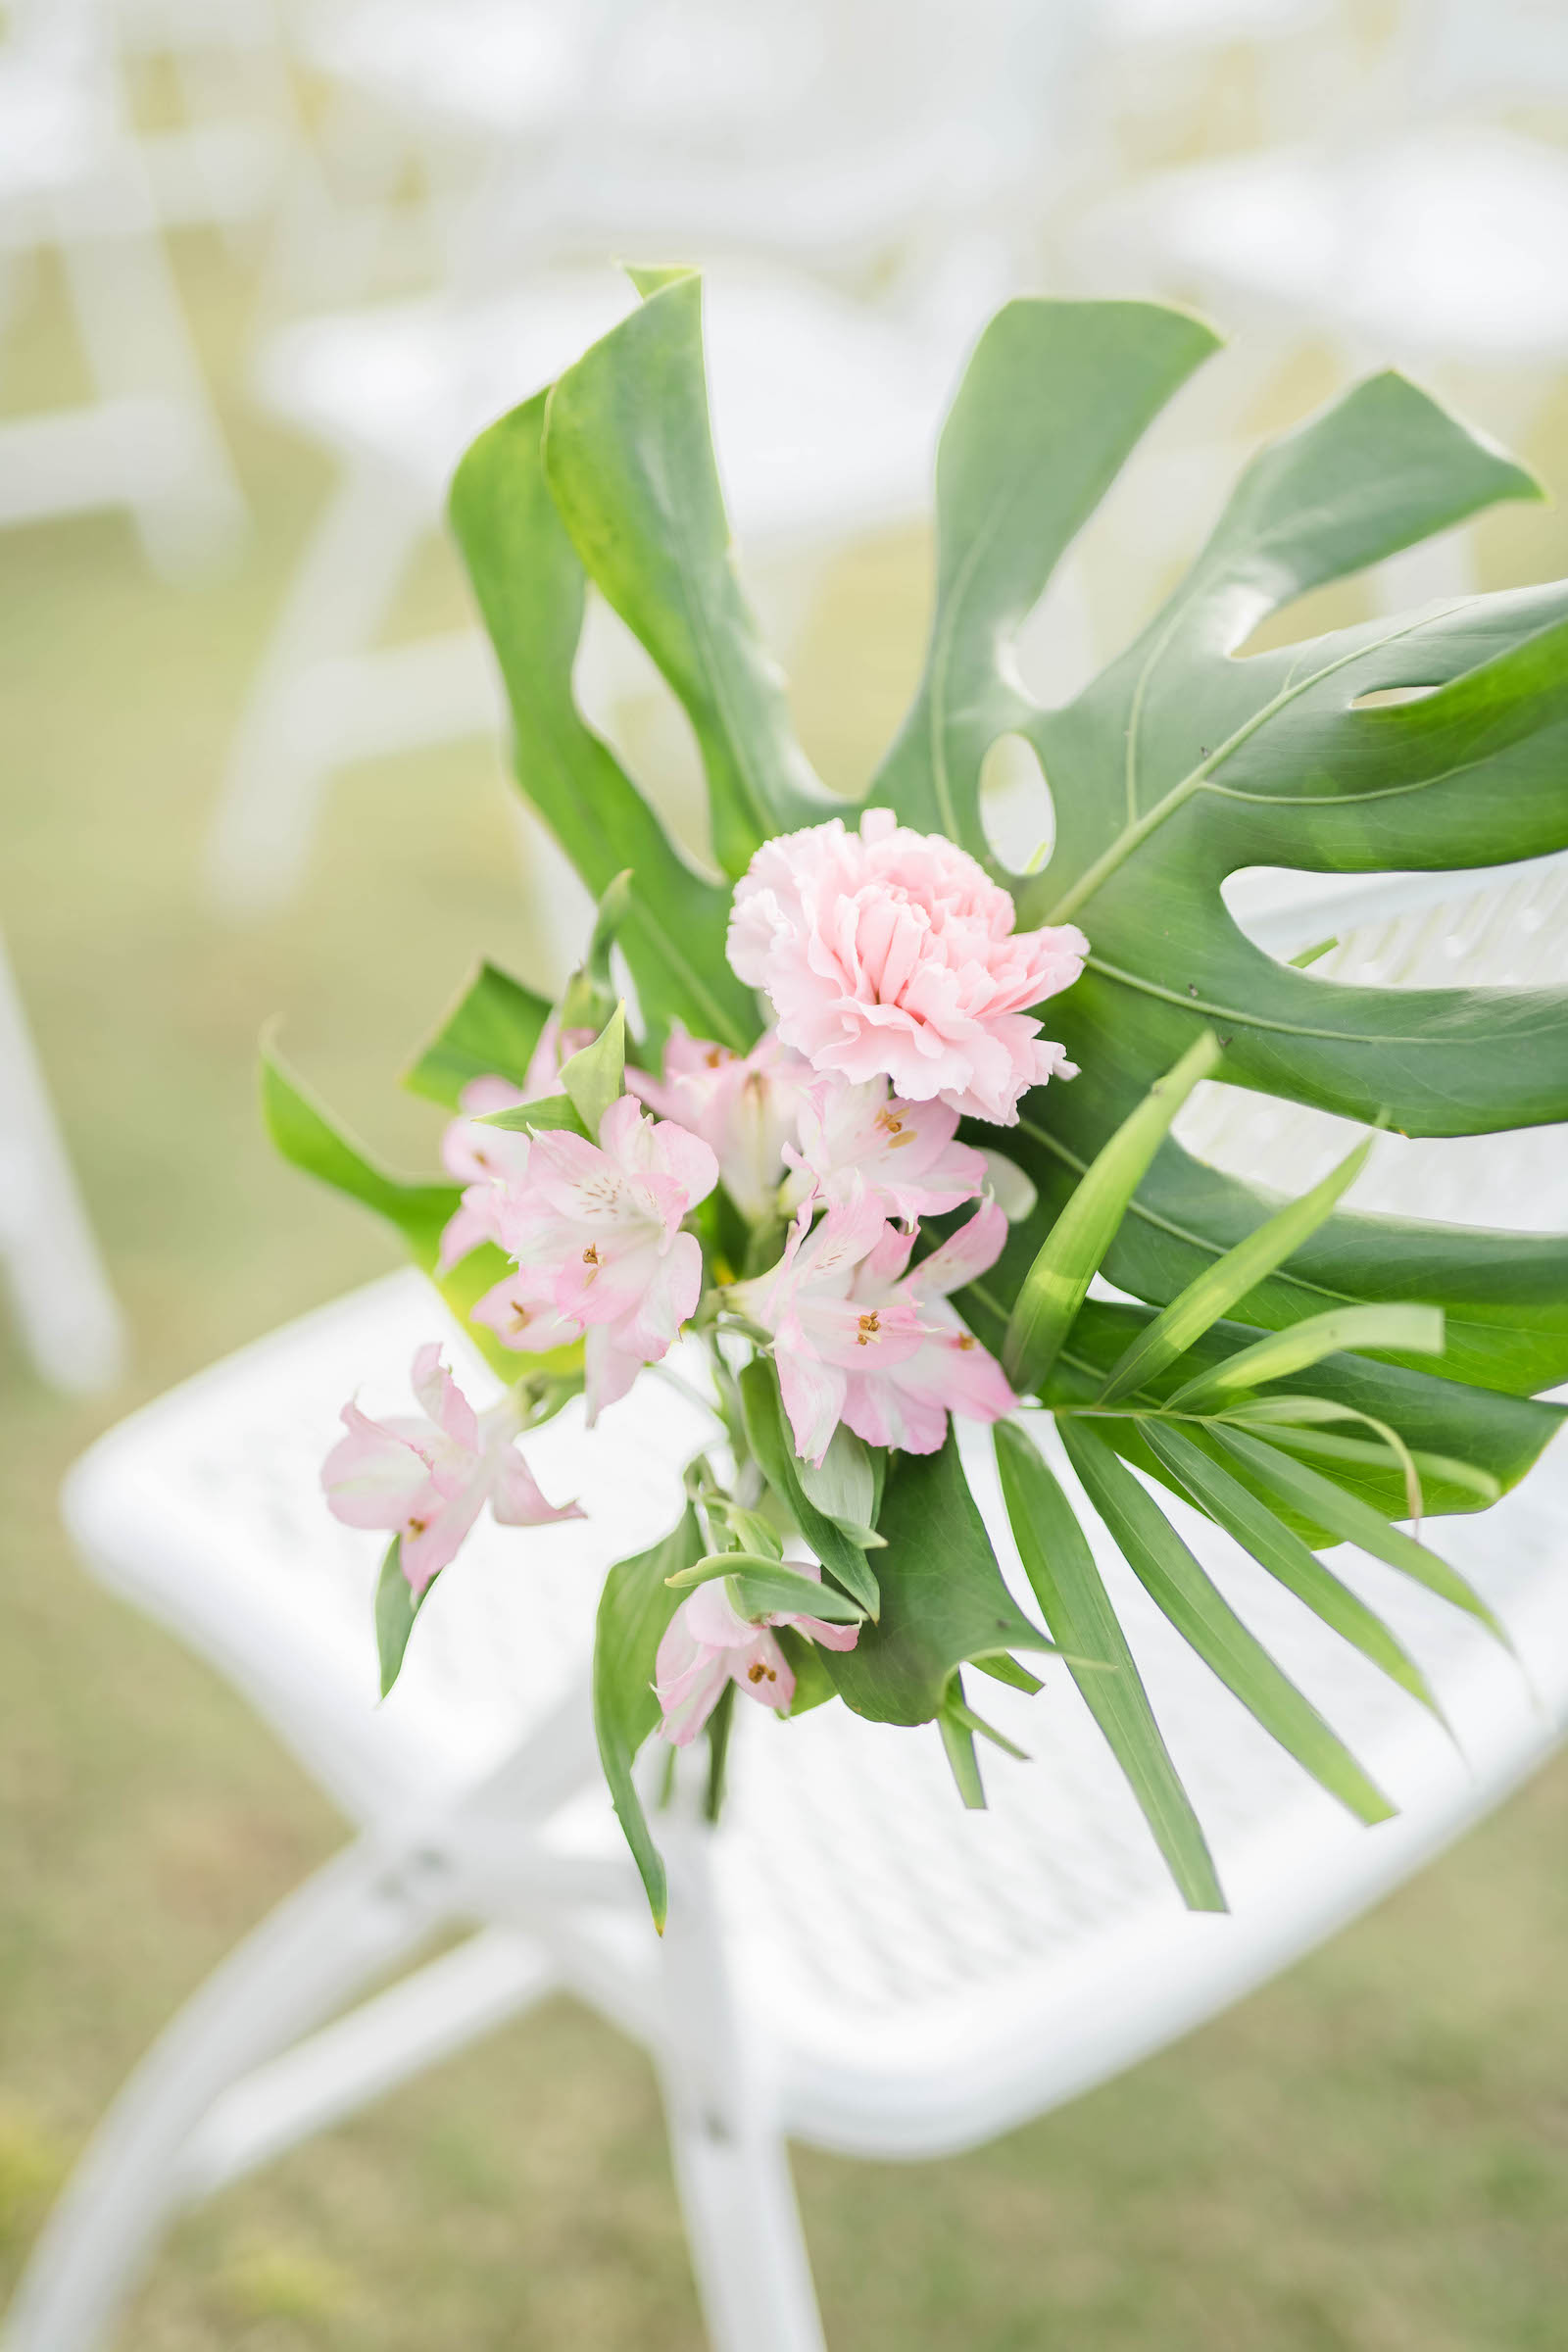 Tropical Wedding Ceremony Decor, Monstera Leaves and Palm Fronds, Pink Flowers Arrangement on Chairs | Tampa Bay Wedding Planner Coastal Coordinating